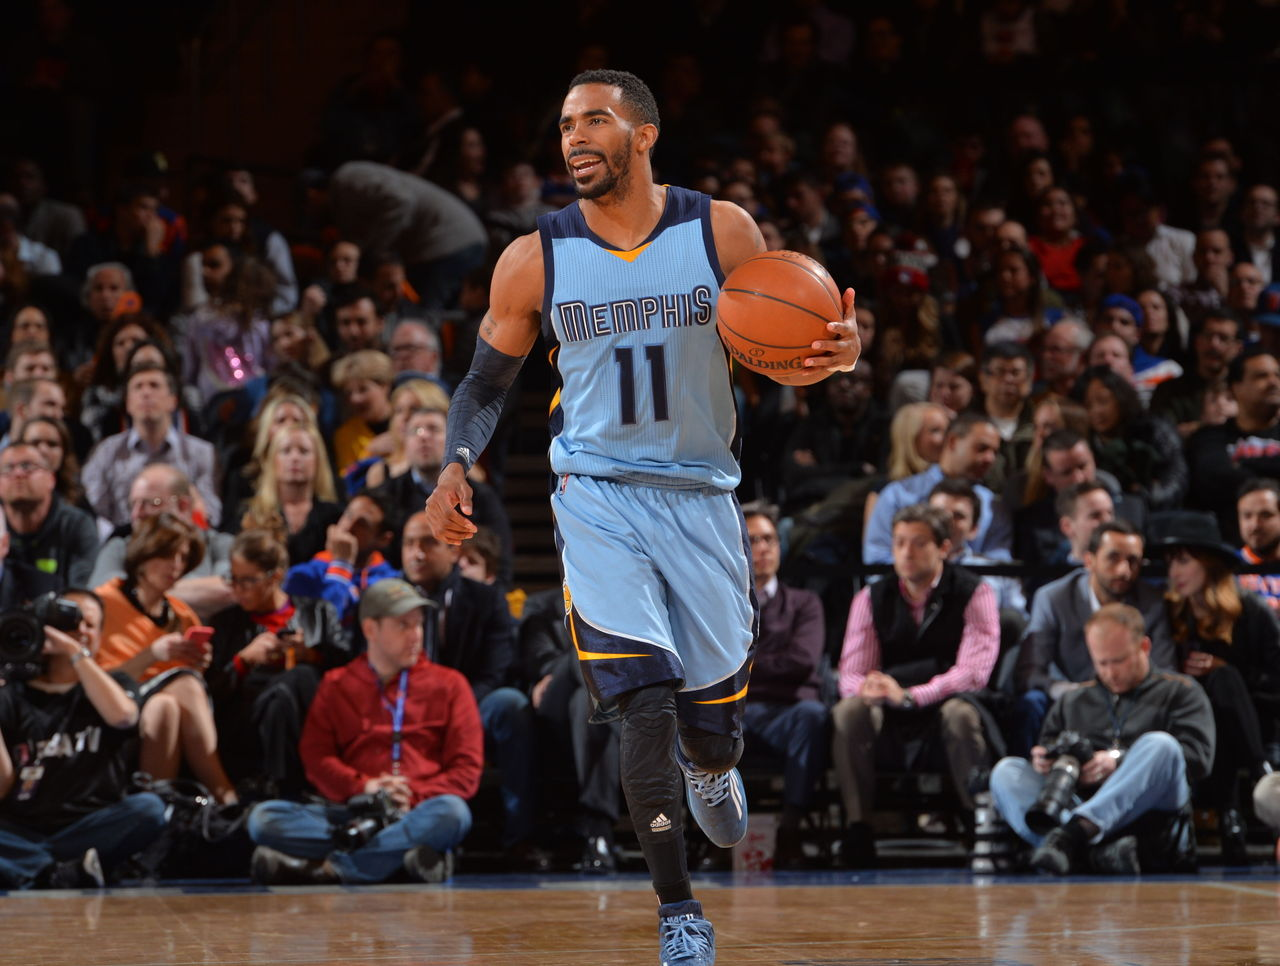 Report: Grizzlies, Conley agree to biggest contract in NBA history